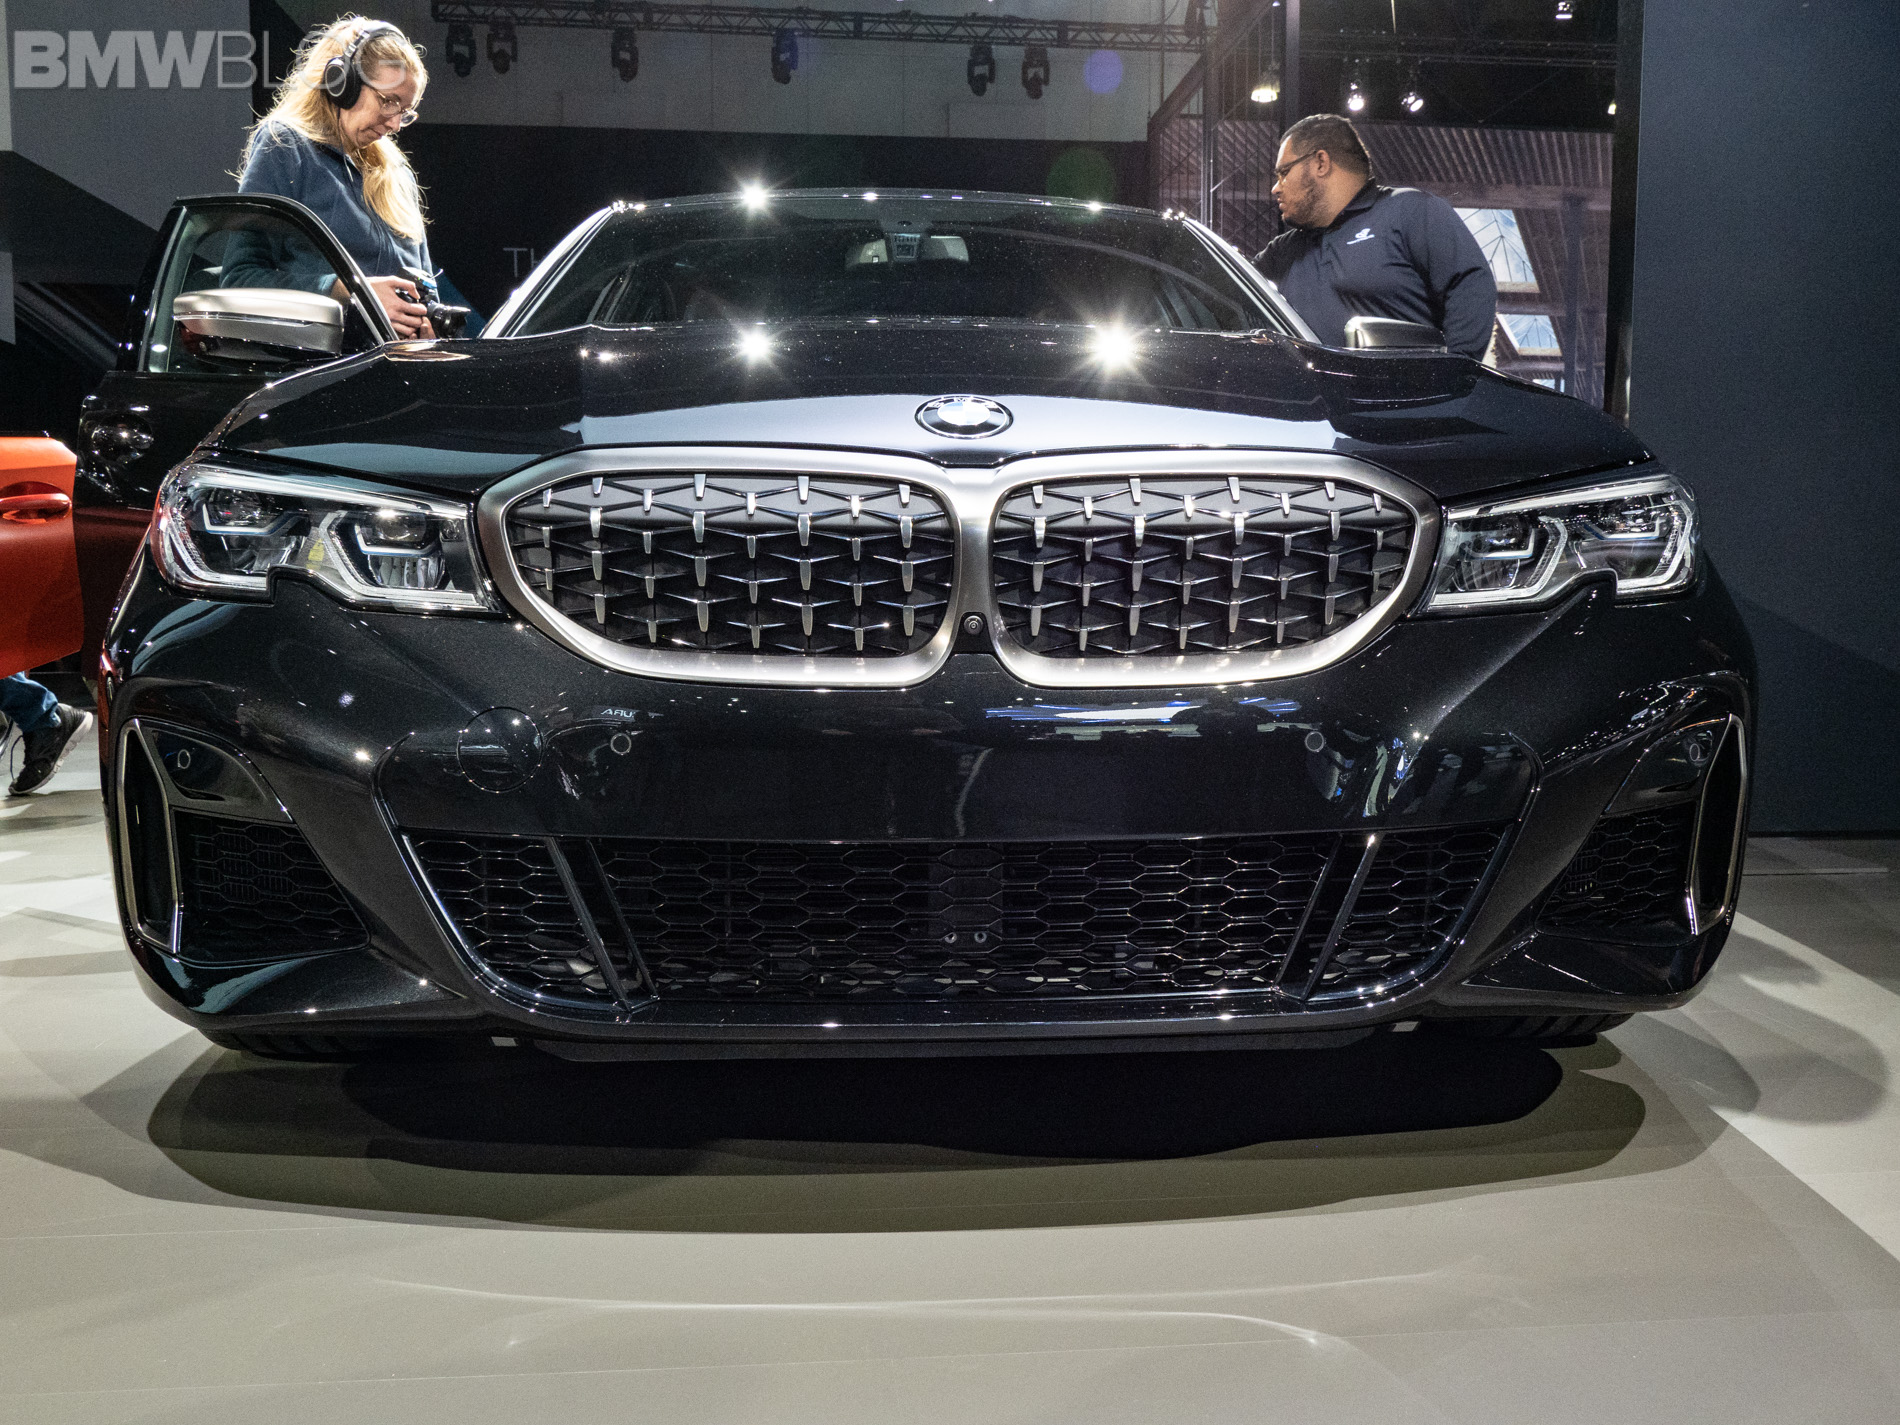 2018 la auto show g20 bmw m340i makes world debut. Black Bedroom Furniture Sets. Home Design Ideas